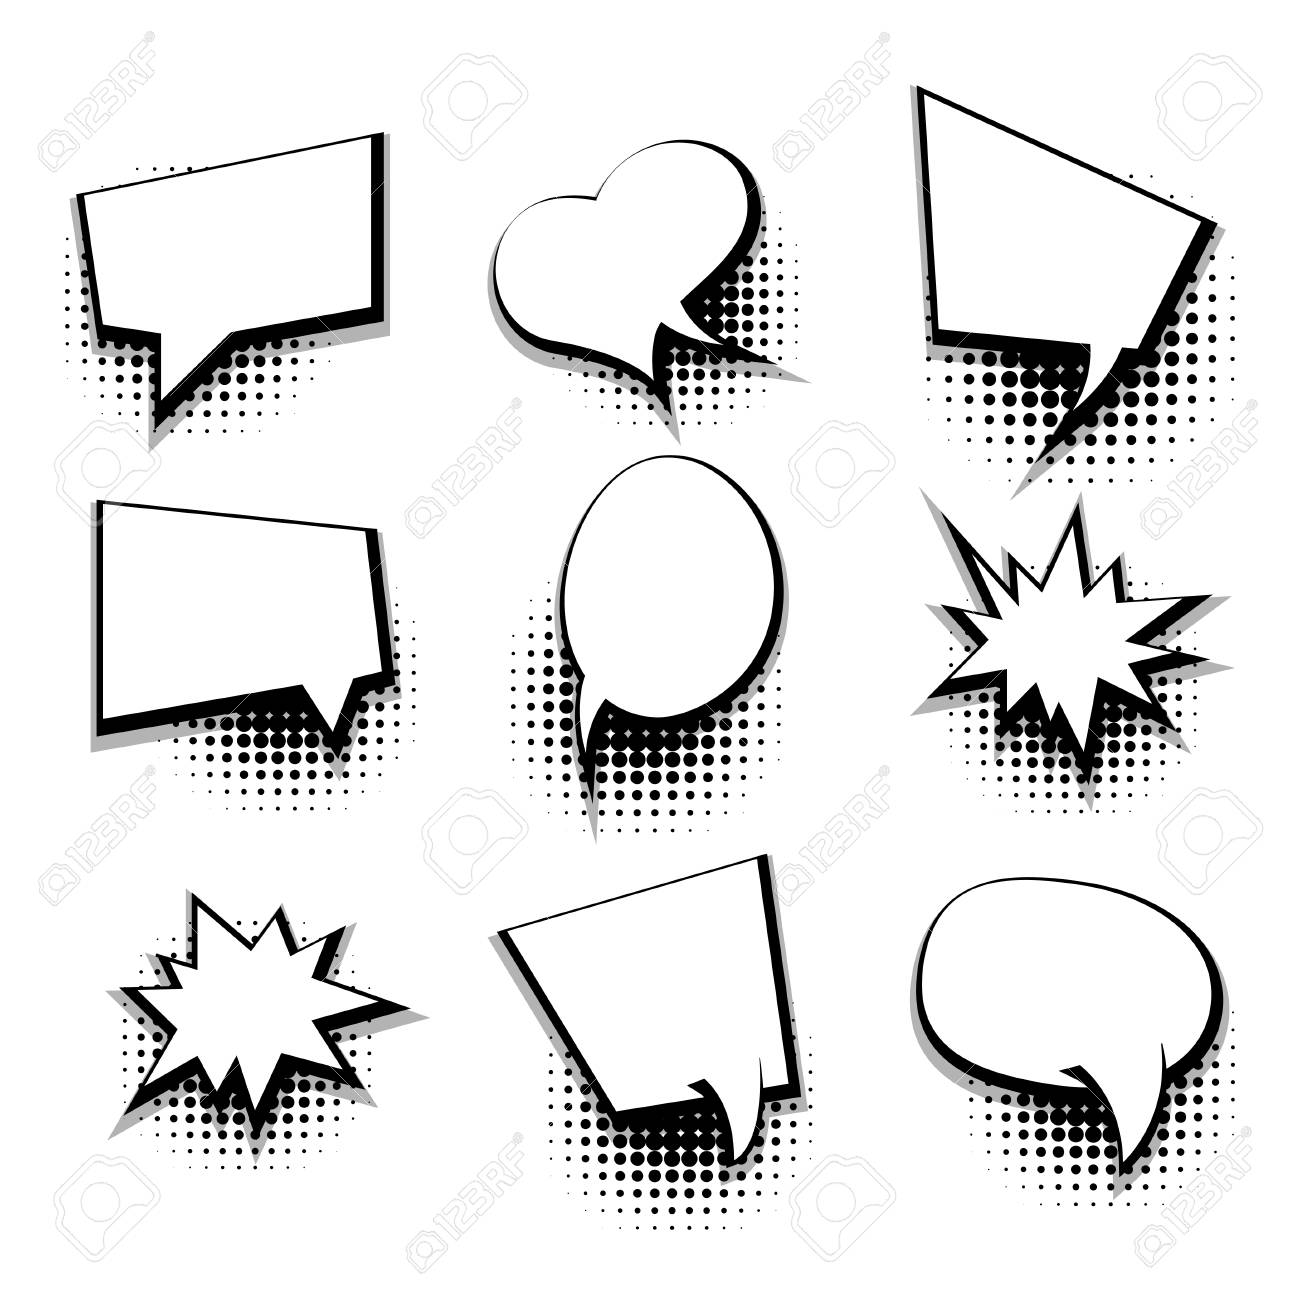 Collection Blank Comic Text Template Speech Bubble Royalty Free